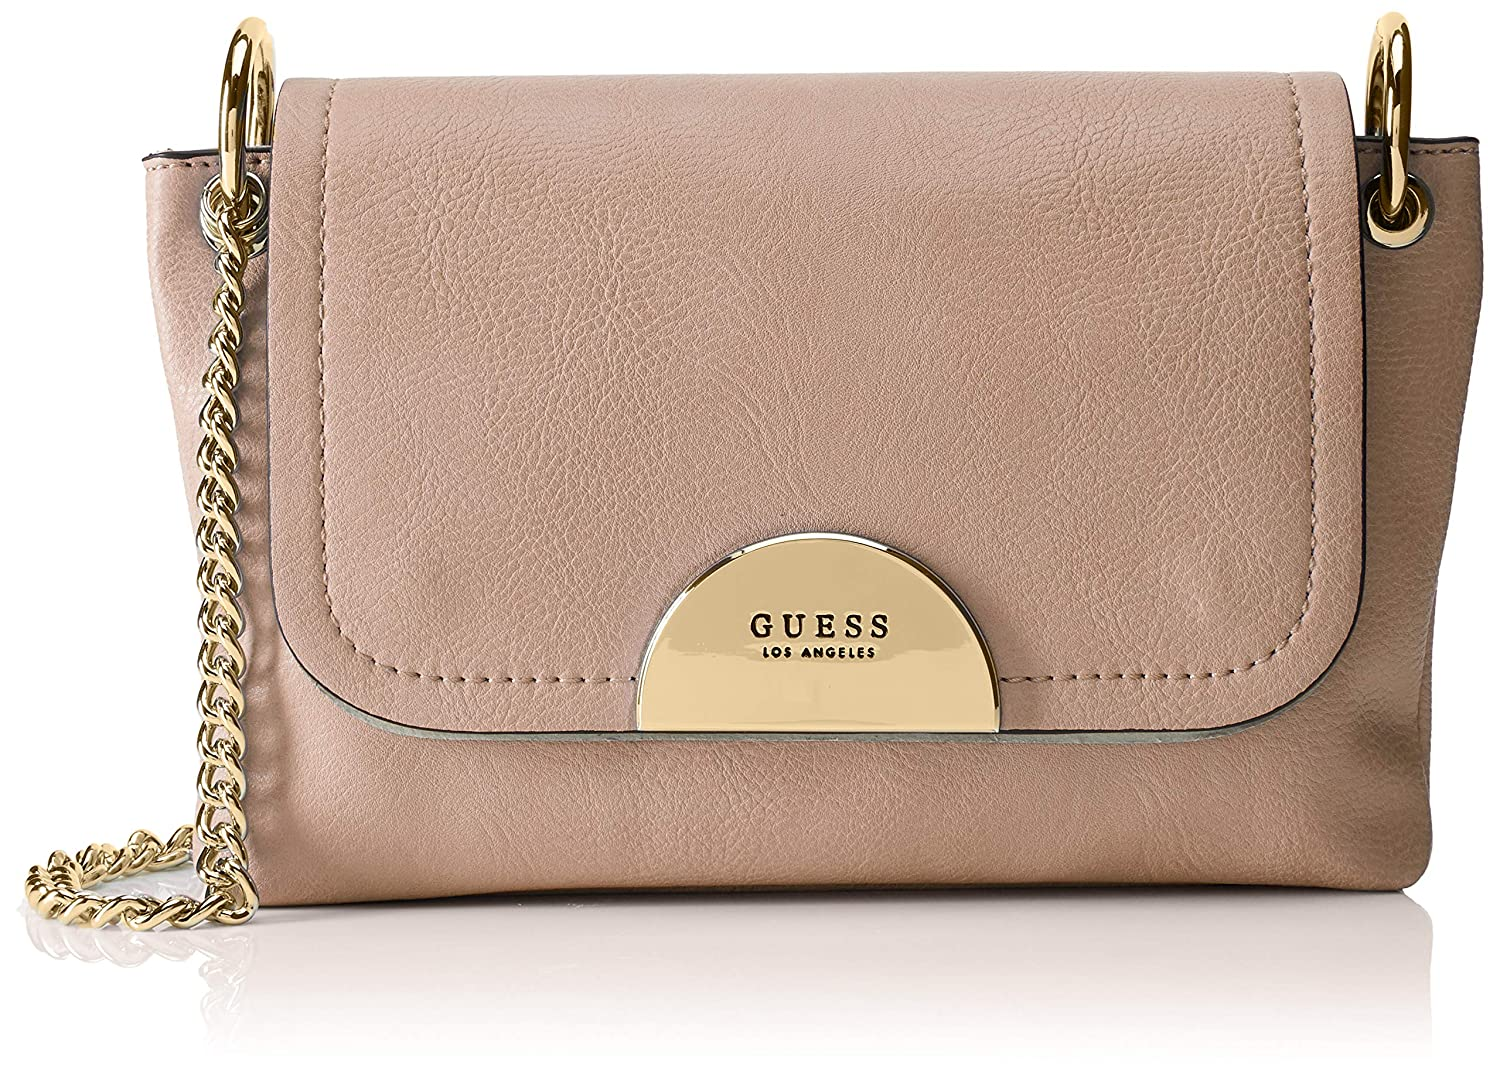 243 Best GUESS images | Guess handbags, Guess purses, Guess bags